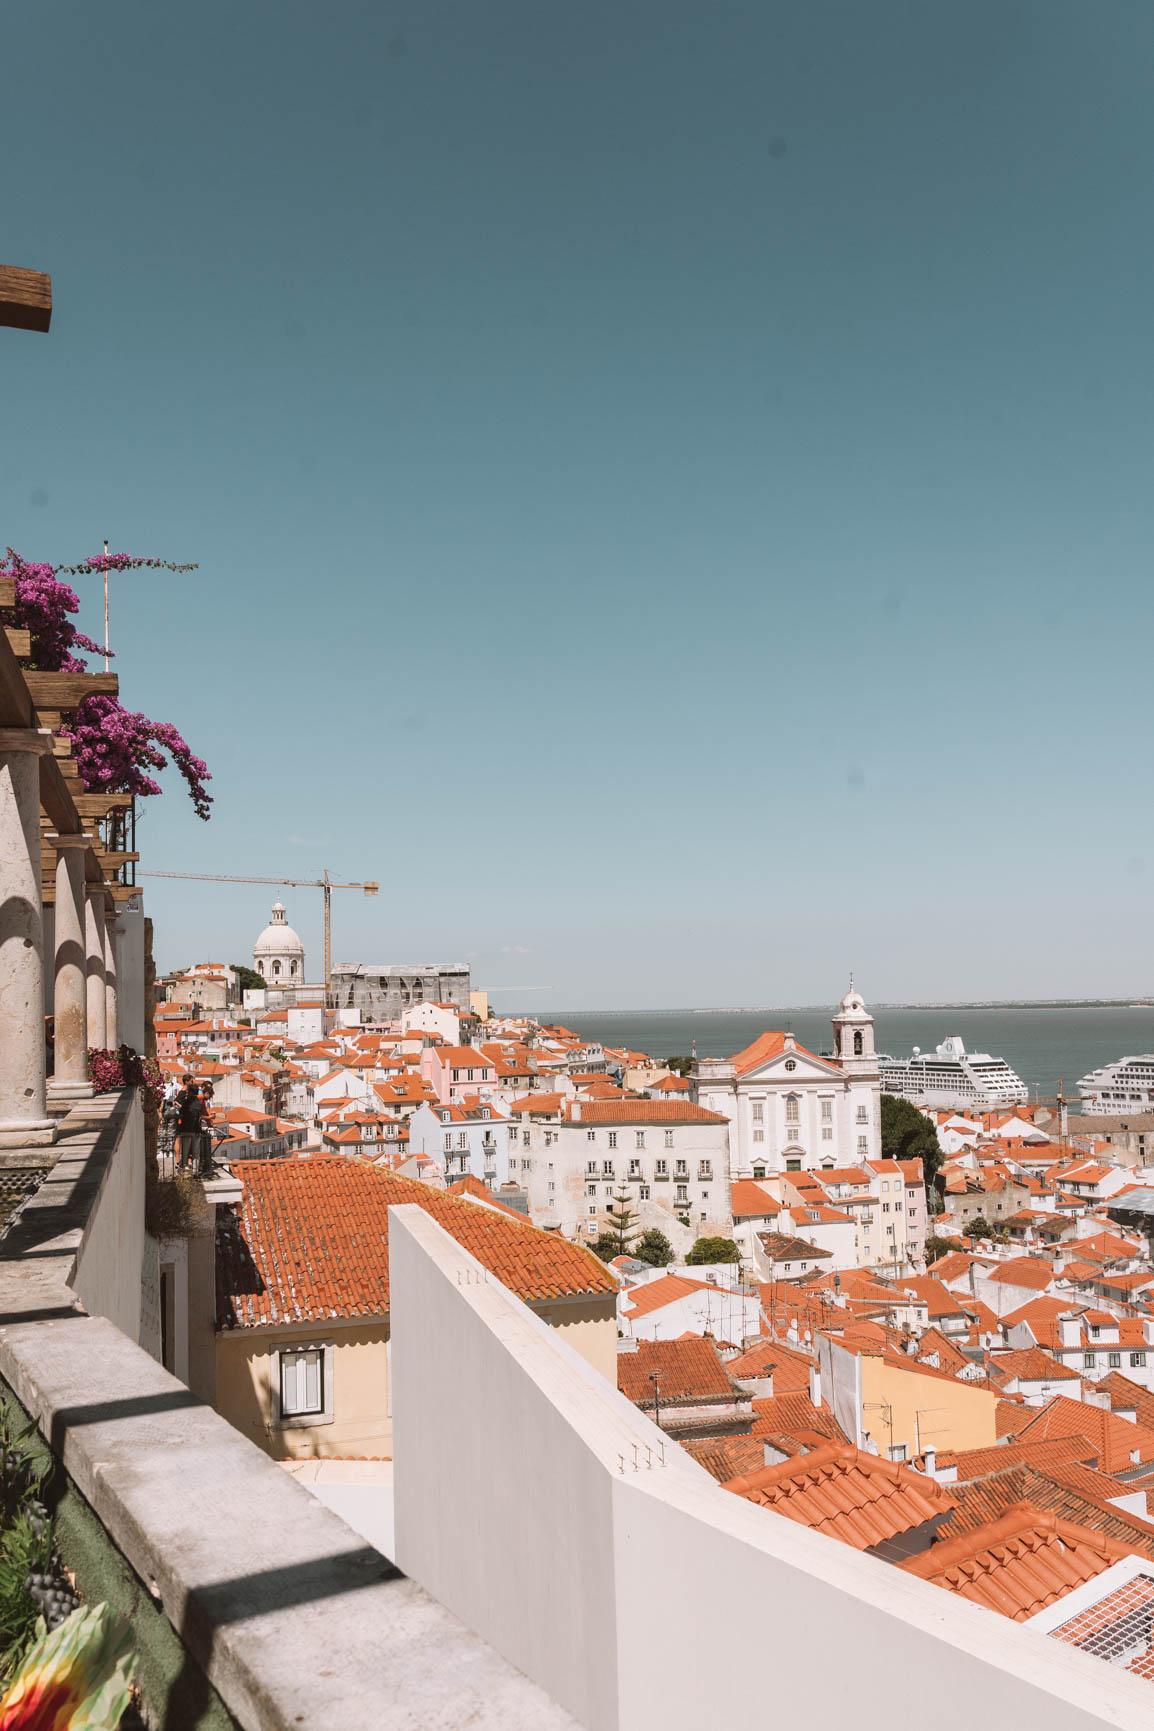 Fun Things to do in Lisbon Portugal - Explore Bairro Alto and Alfama #Lisbon #Portugal #Europe 2 - 3 Days Itinerary in Lisbon | Lisbon Viewpoint